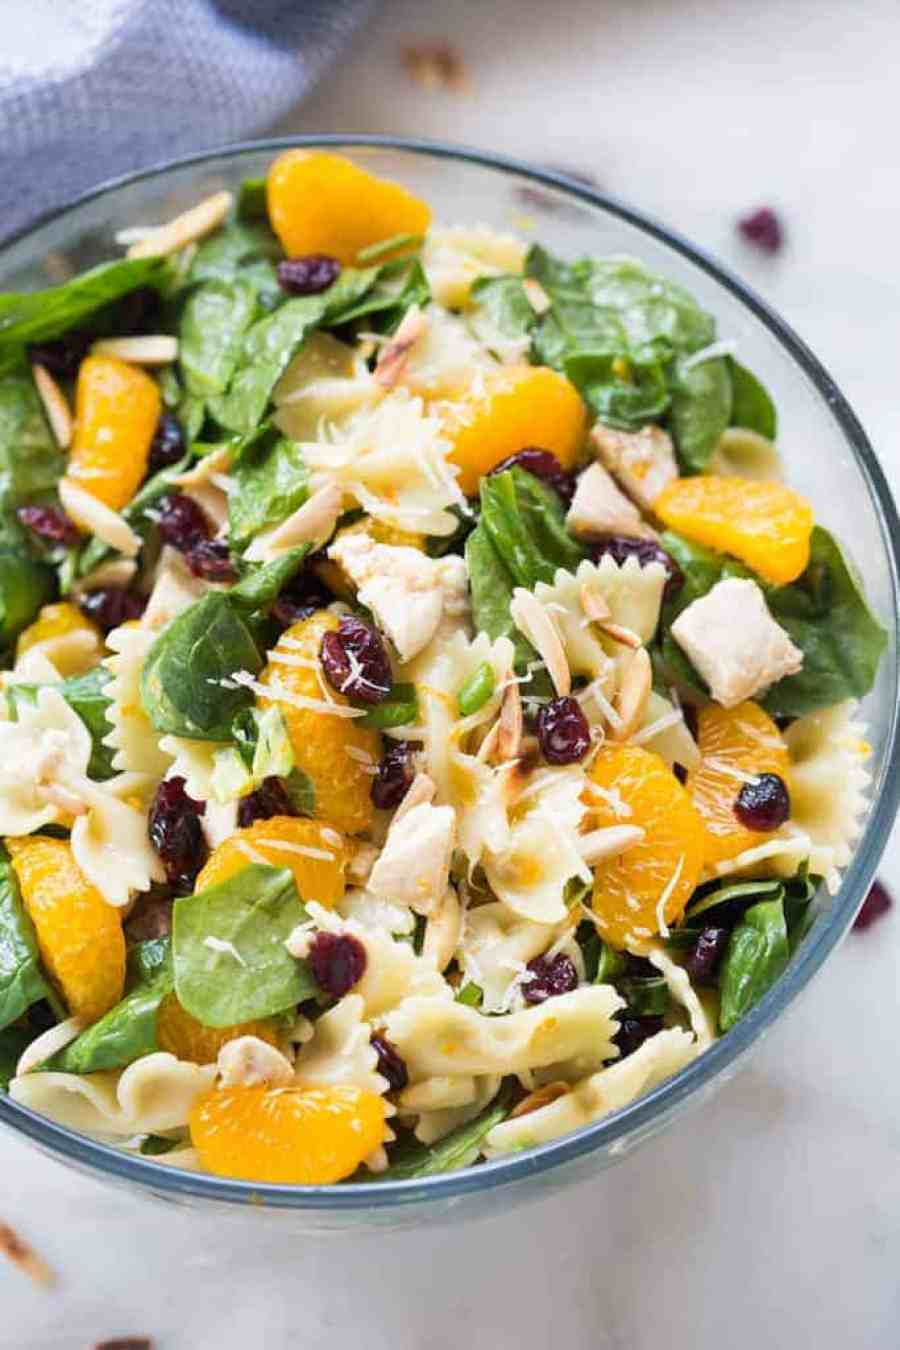 Healthy Chicken Pasta Salad loaded with spinach, mandarin oranges, craisins, almonds and parmesan cheese, tossed together with a light and healthy creamy citrus dressing.   tastesbetterfromscratch.com